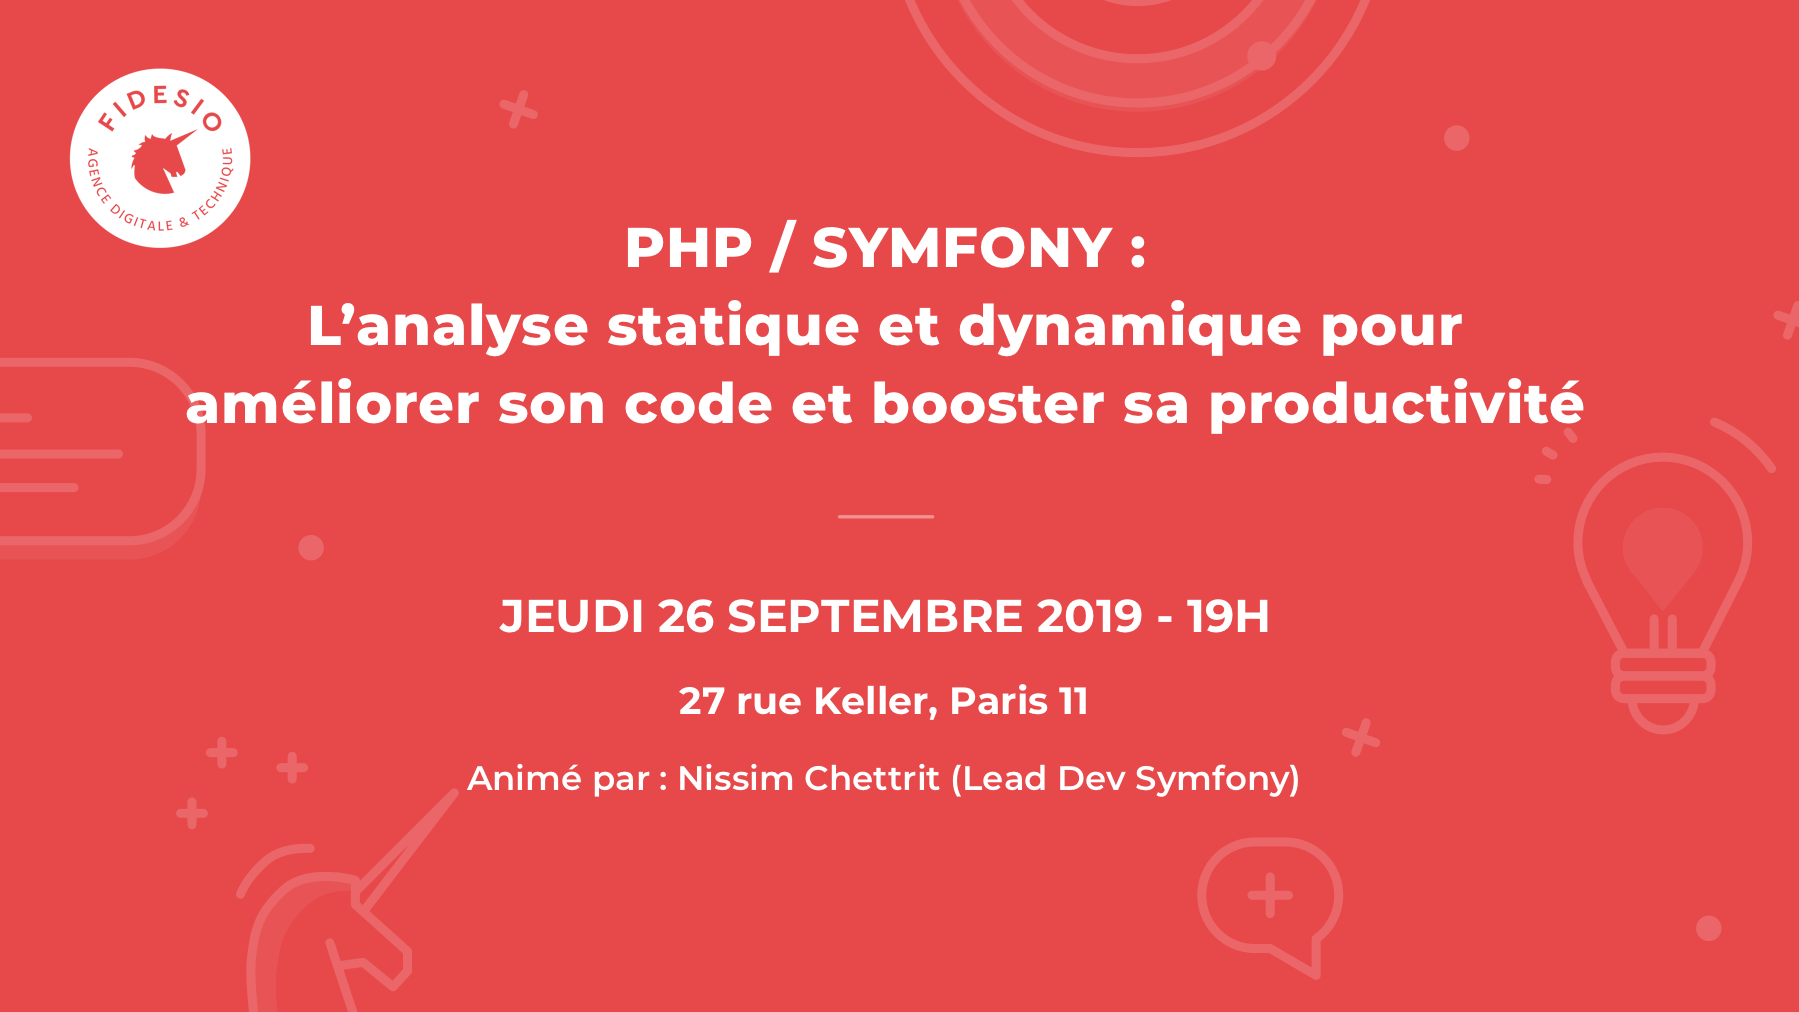 meet up Symfony